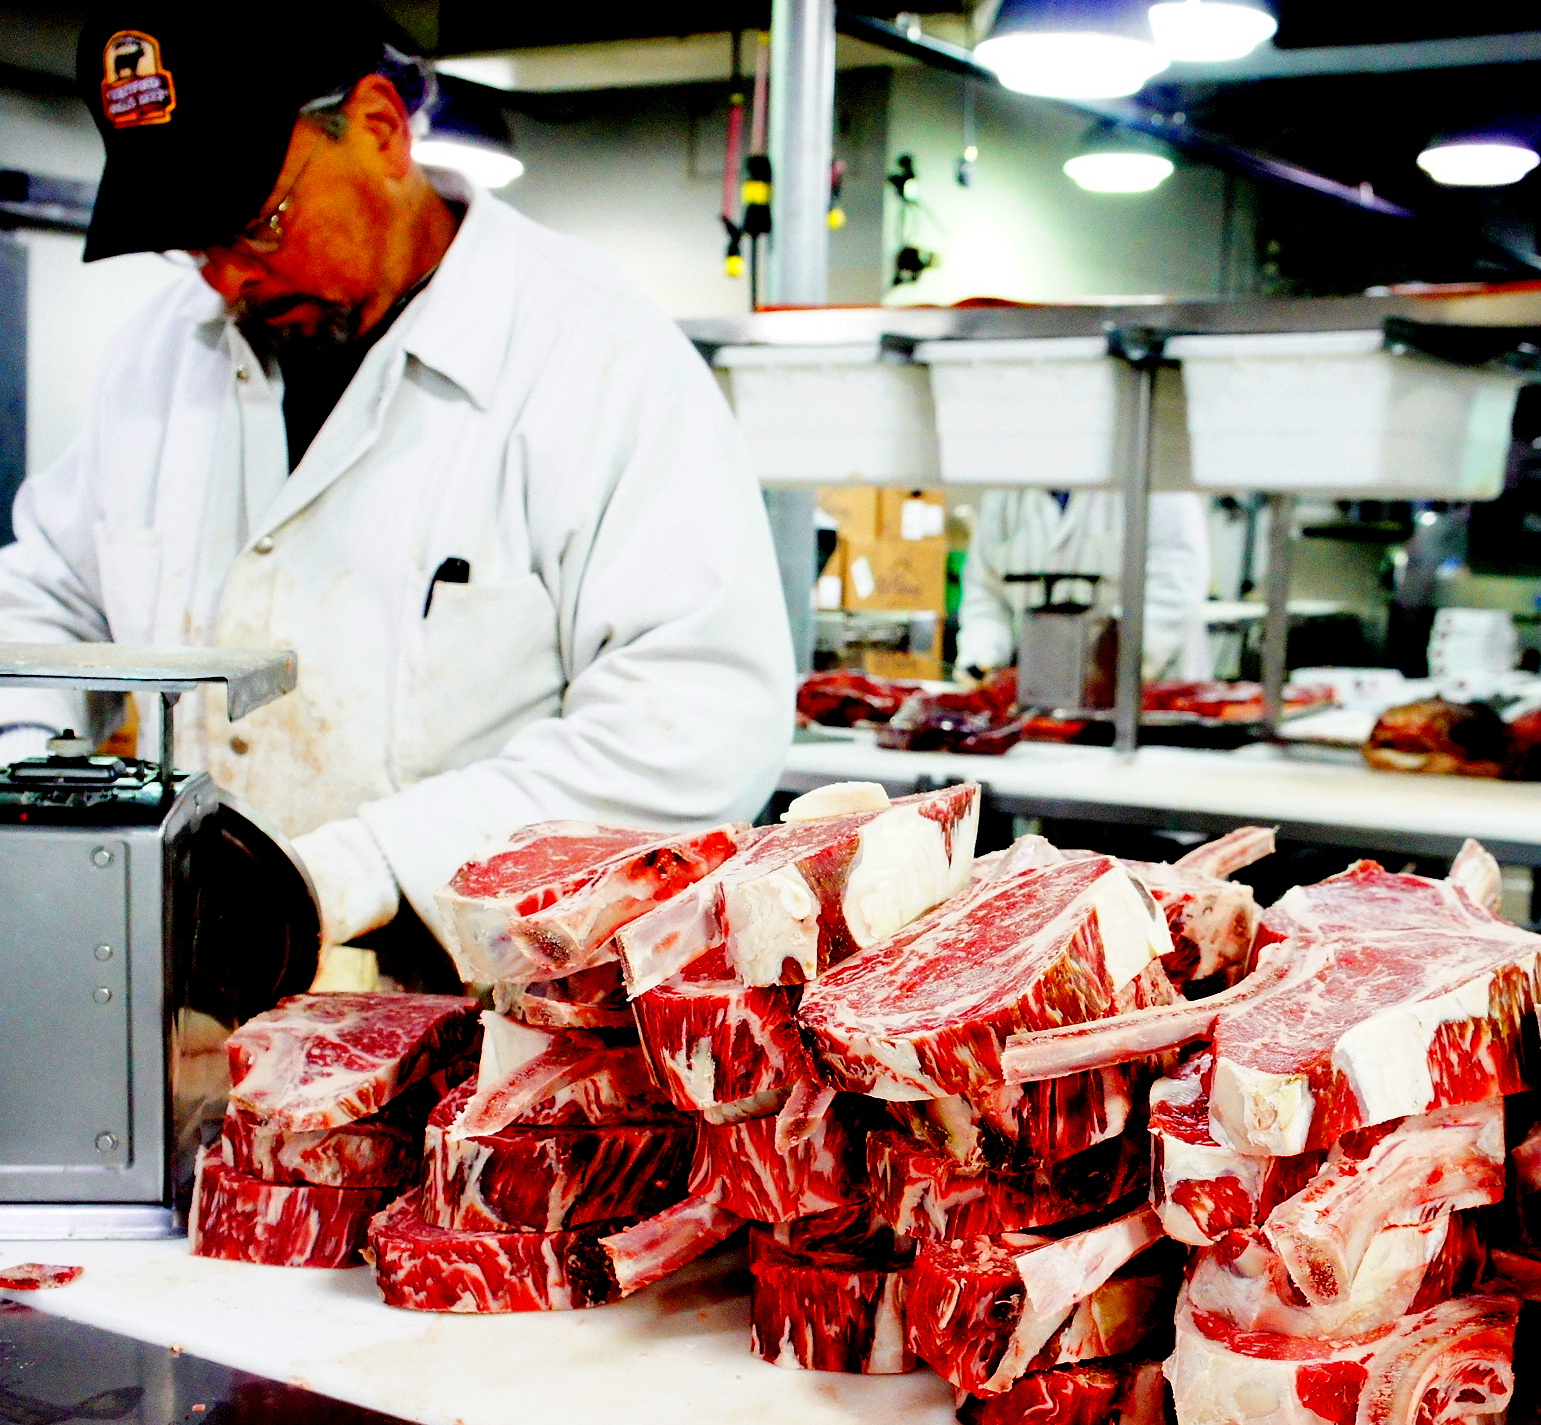 john jenkins meat essay Wronger than wrong, described by michael shermer as asimov's axiom, is a mistake discussed in isaac asimov's book of essays the relativity of wrong a statement that equates two errors is wronger than wrong when one of the errors is clearly more wrong than the other.